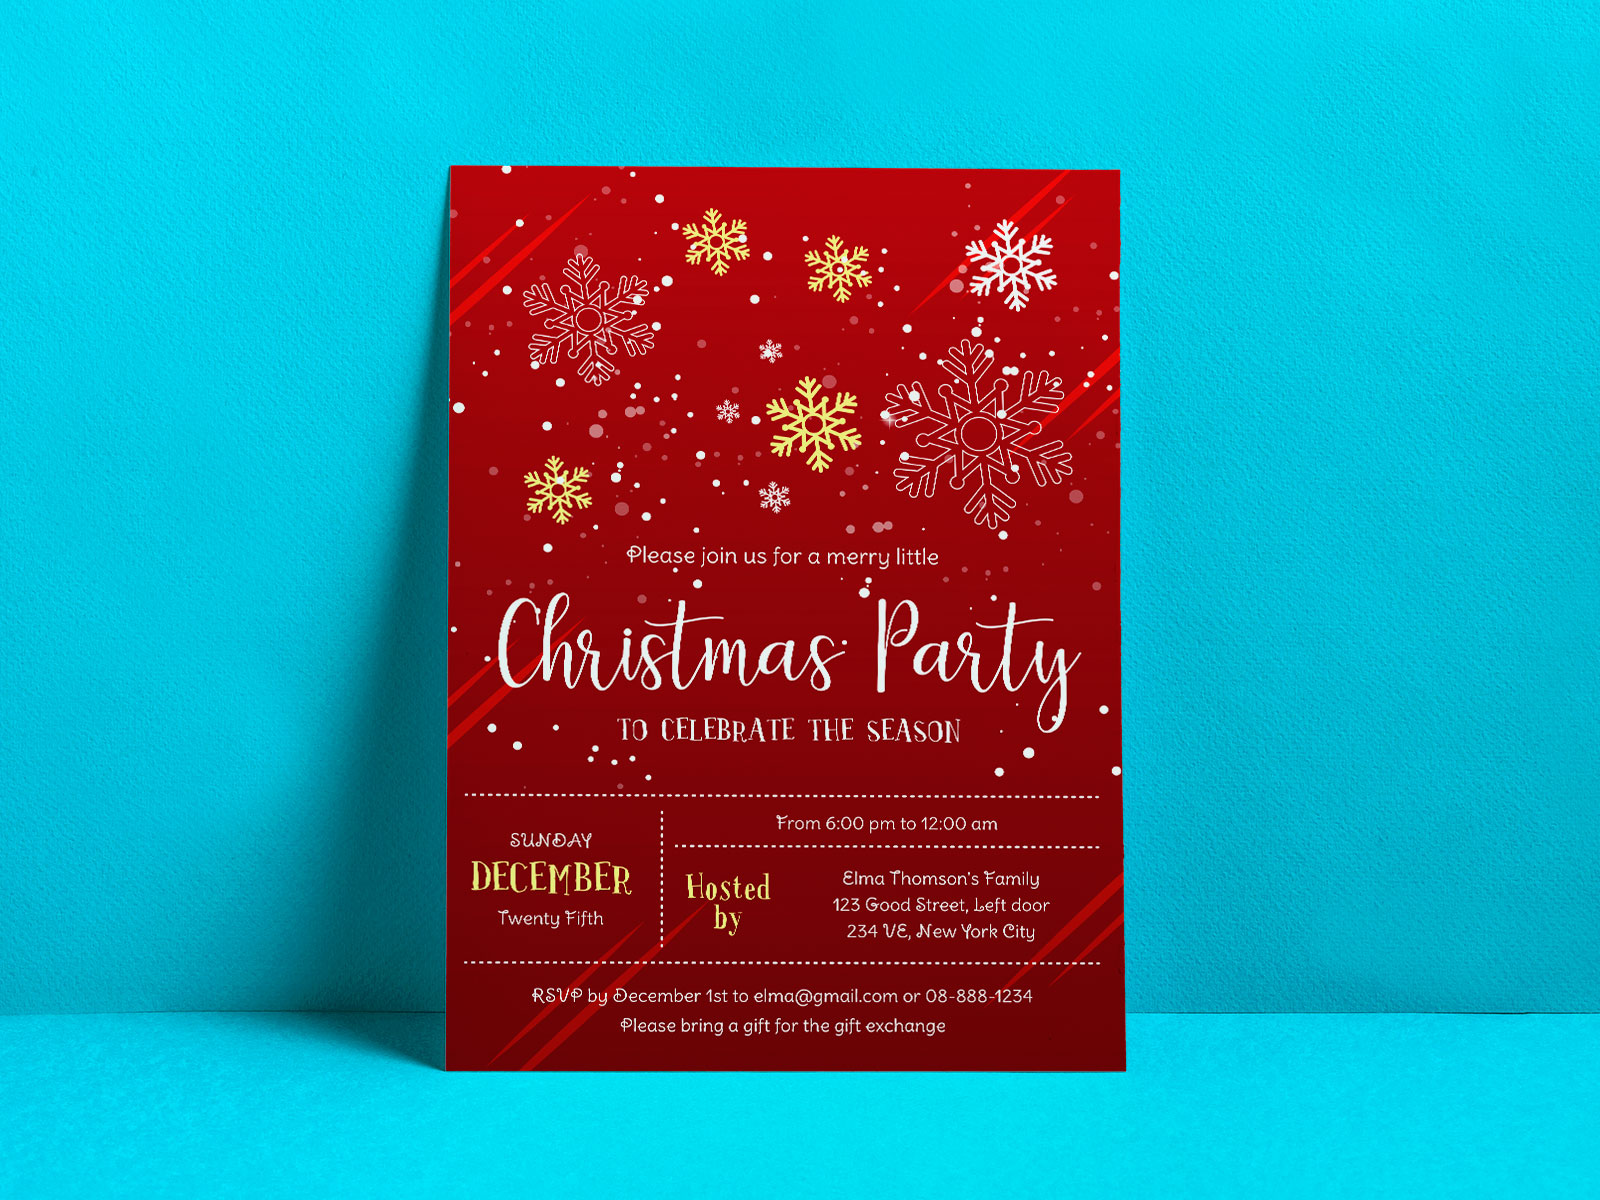 Free Christmas Party Flyer Design Vector Template Ai Format